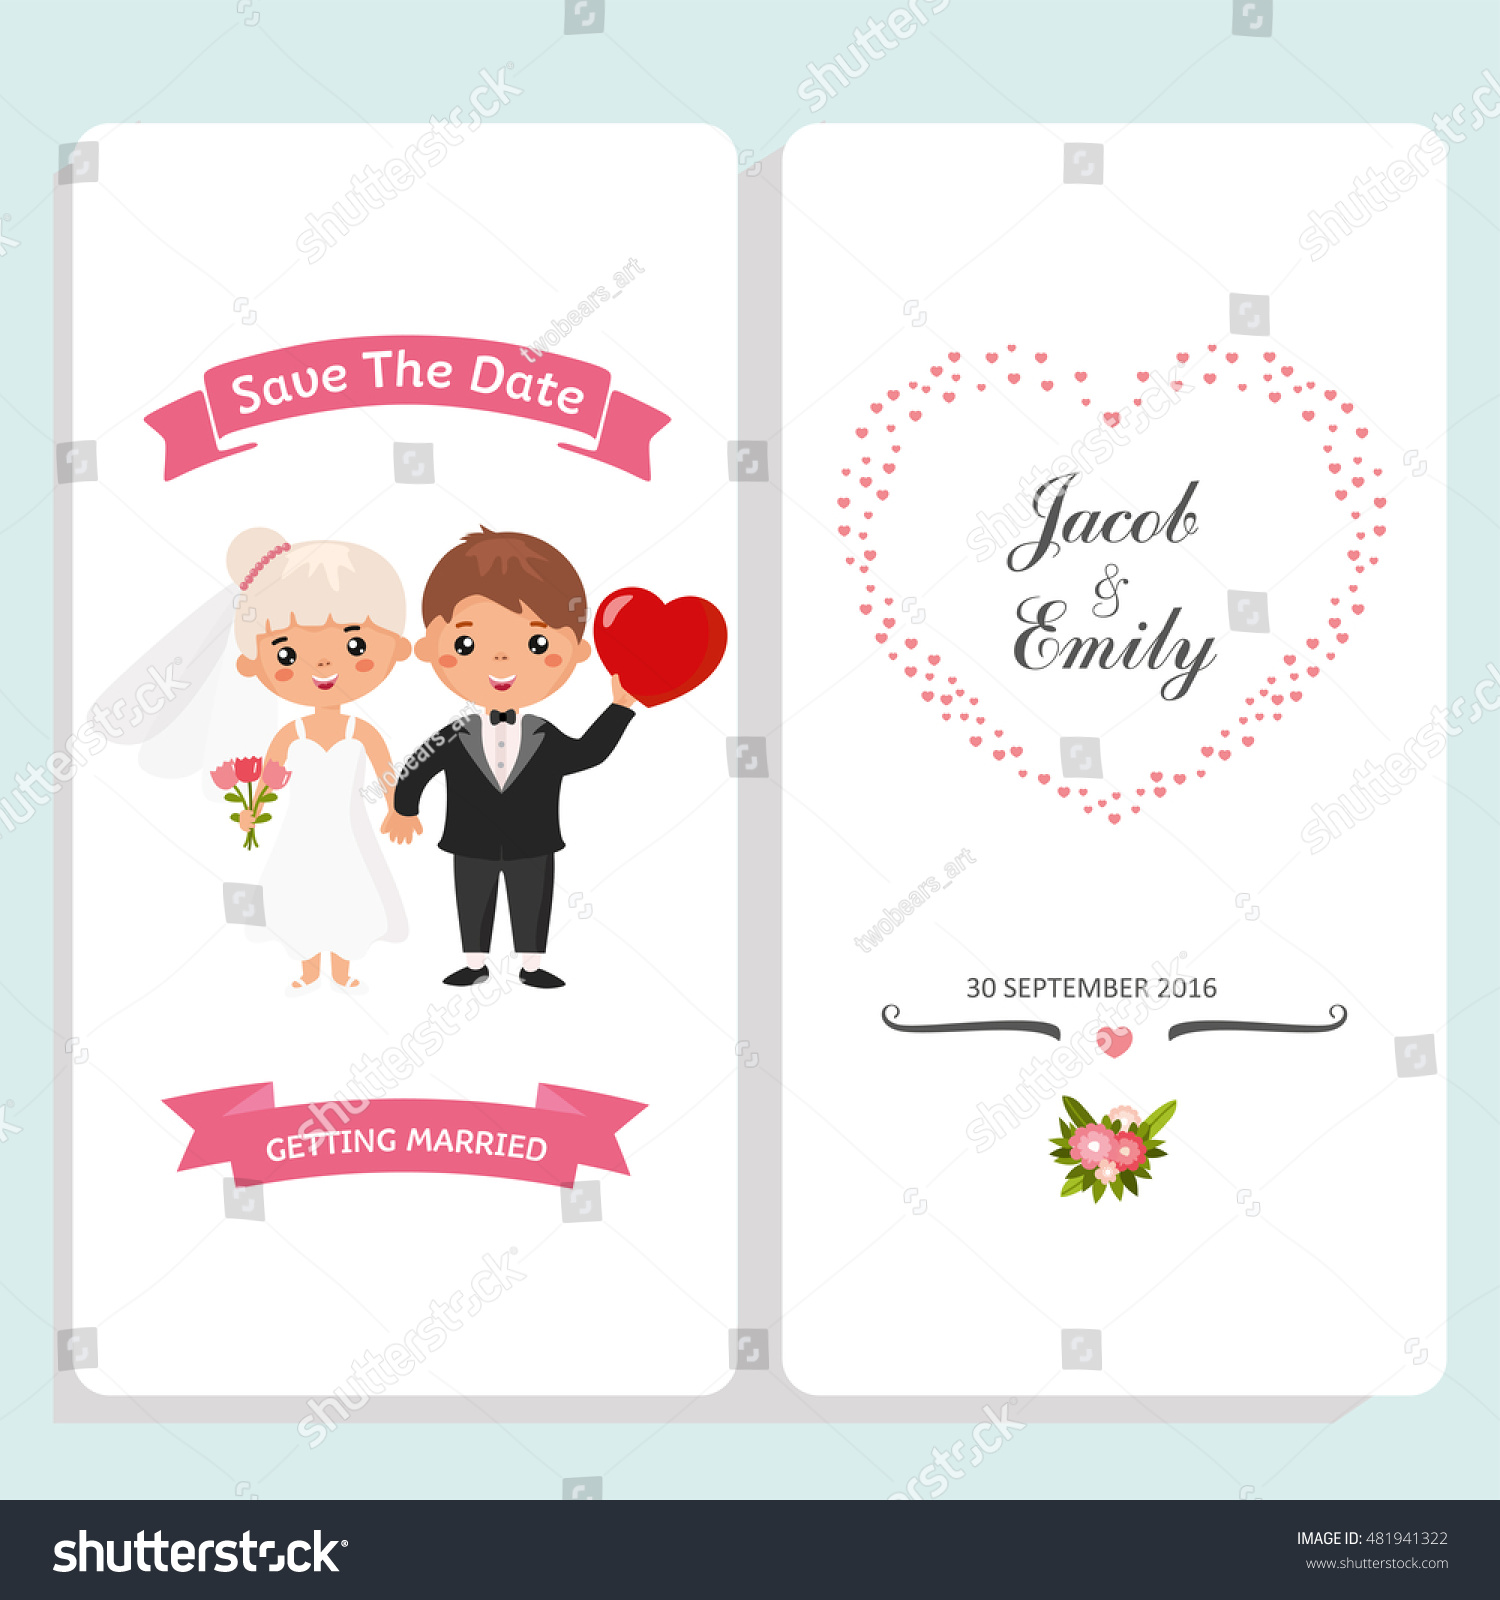 Wedding Invitation Card Template Funny Couple Stock Vector (Royalty ...